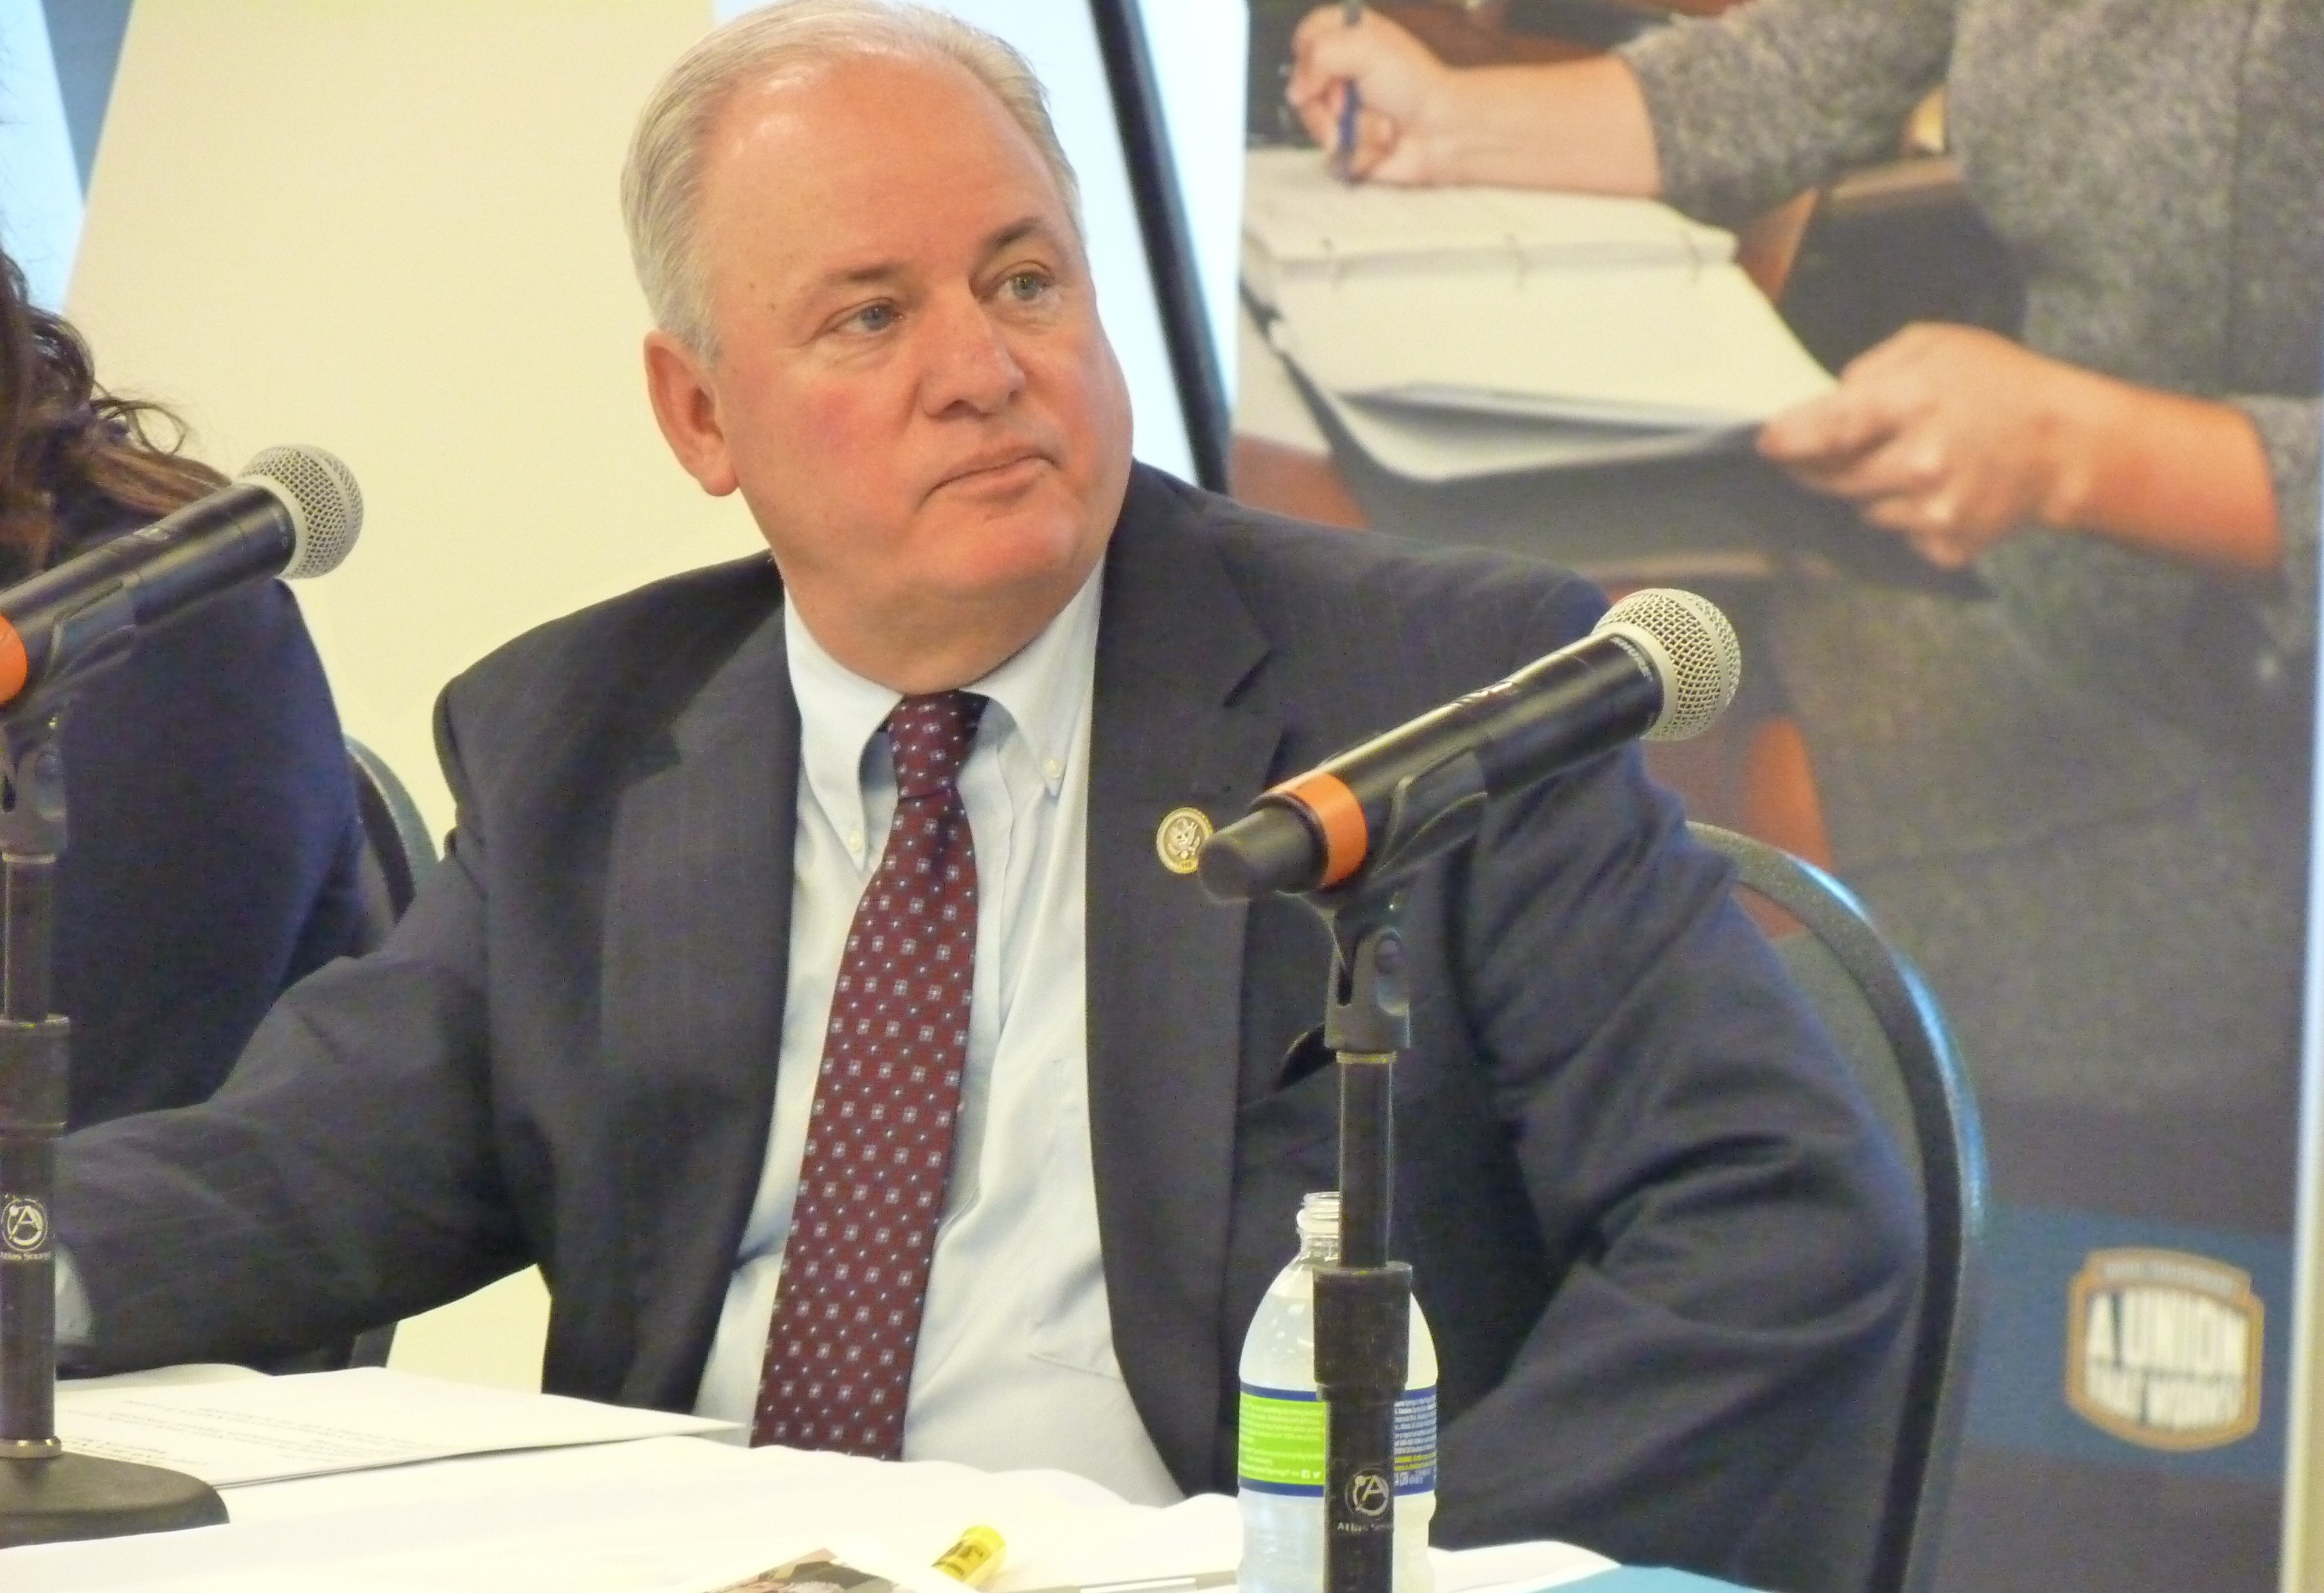 US Rep  Mike Doyle's climate change town hall omissions draw